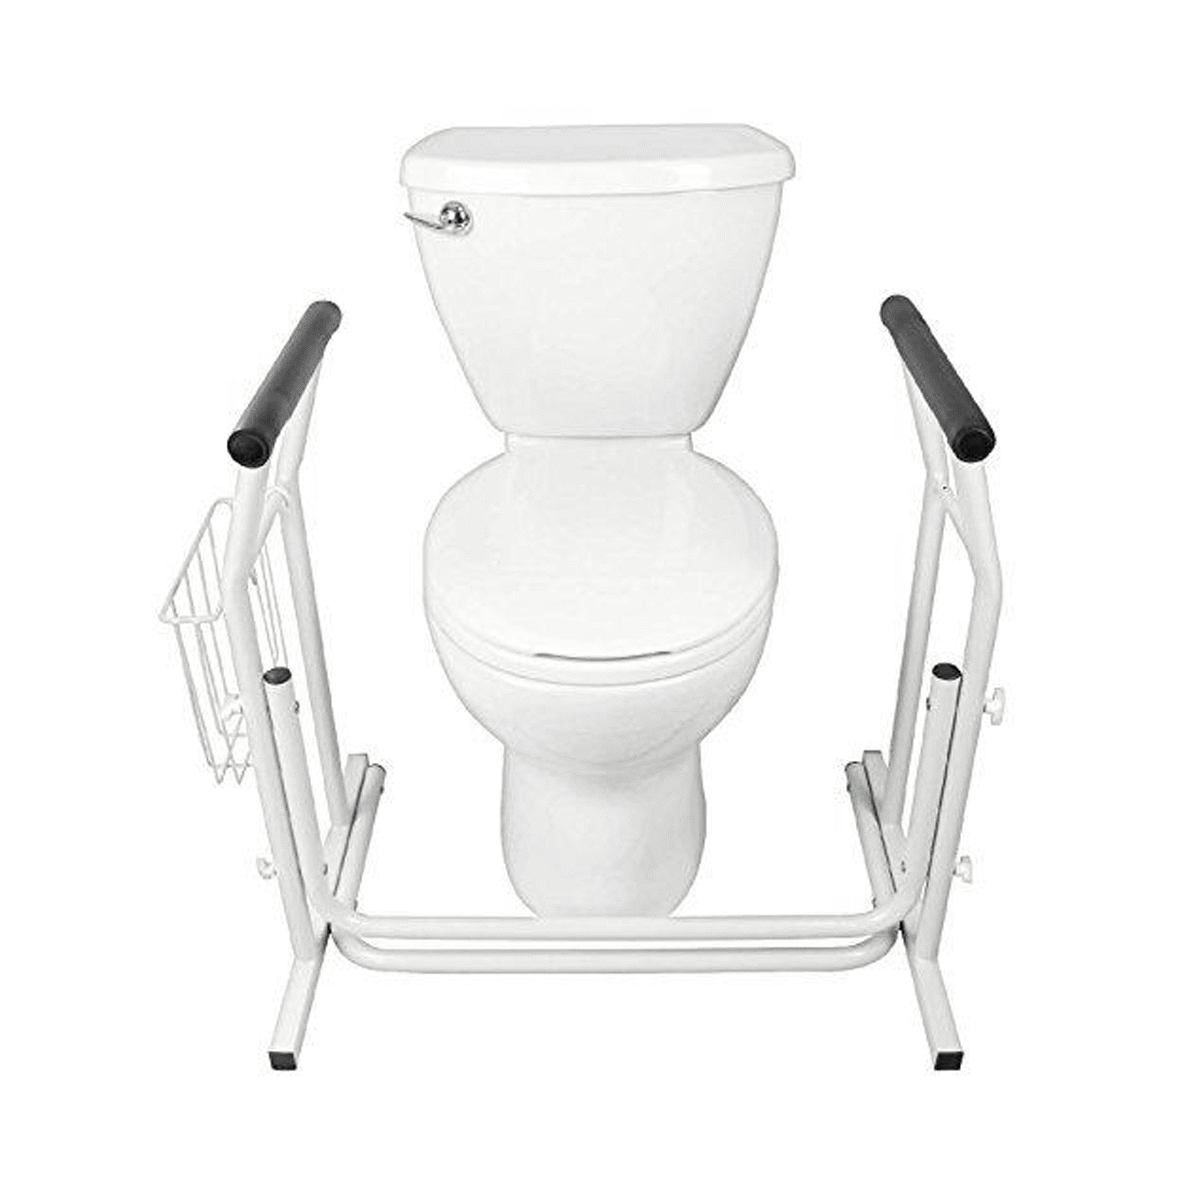 Stand Alone  - Toilet Safety Frame for Handicap & Disabled